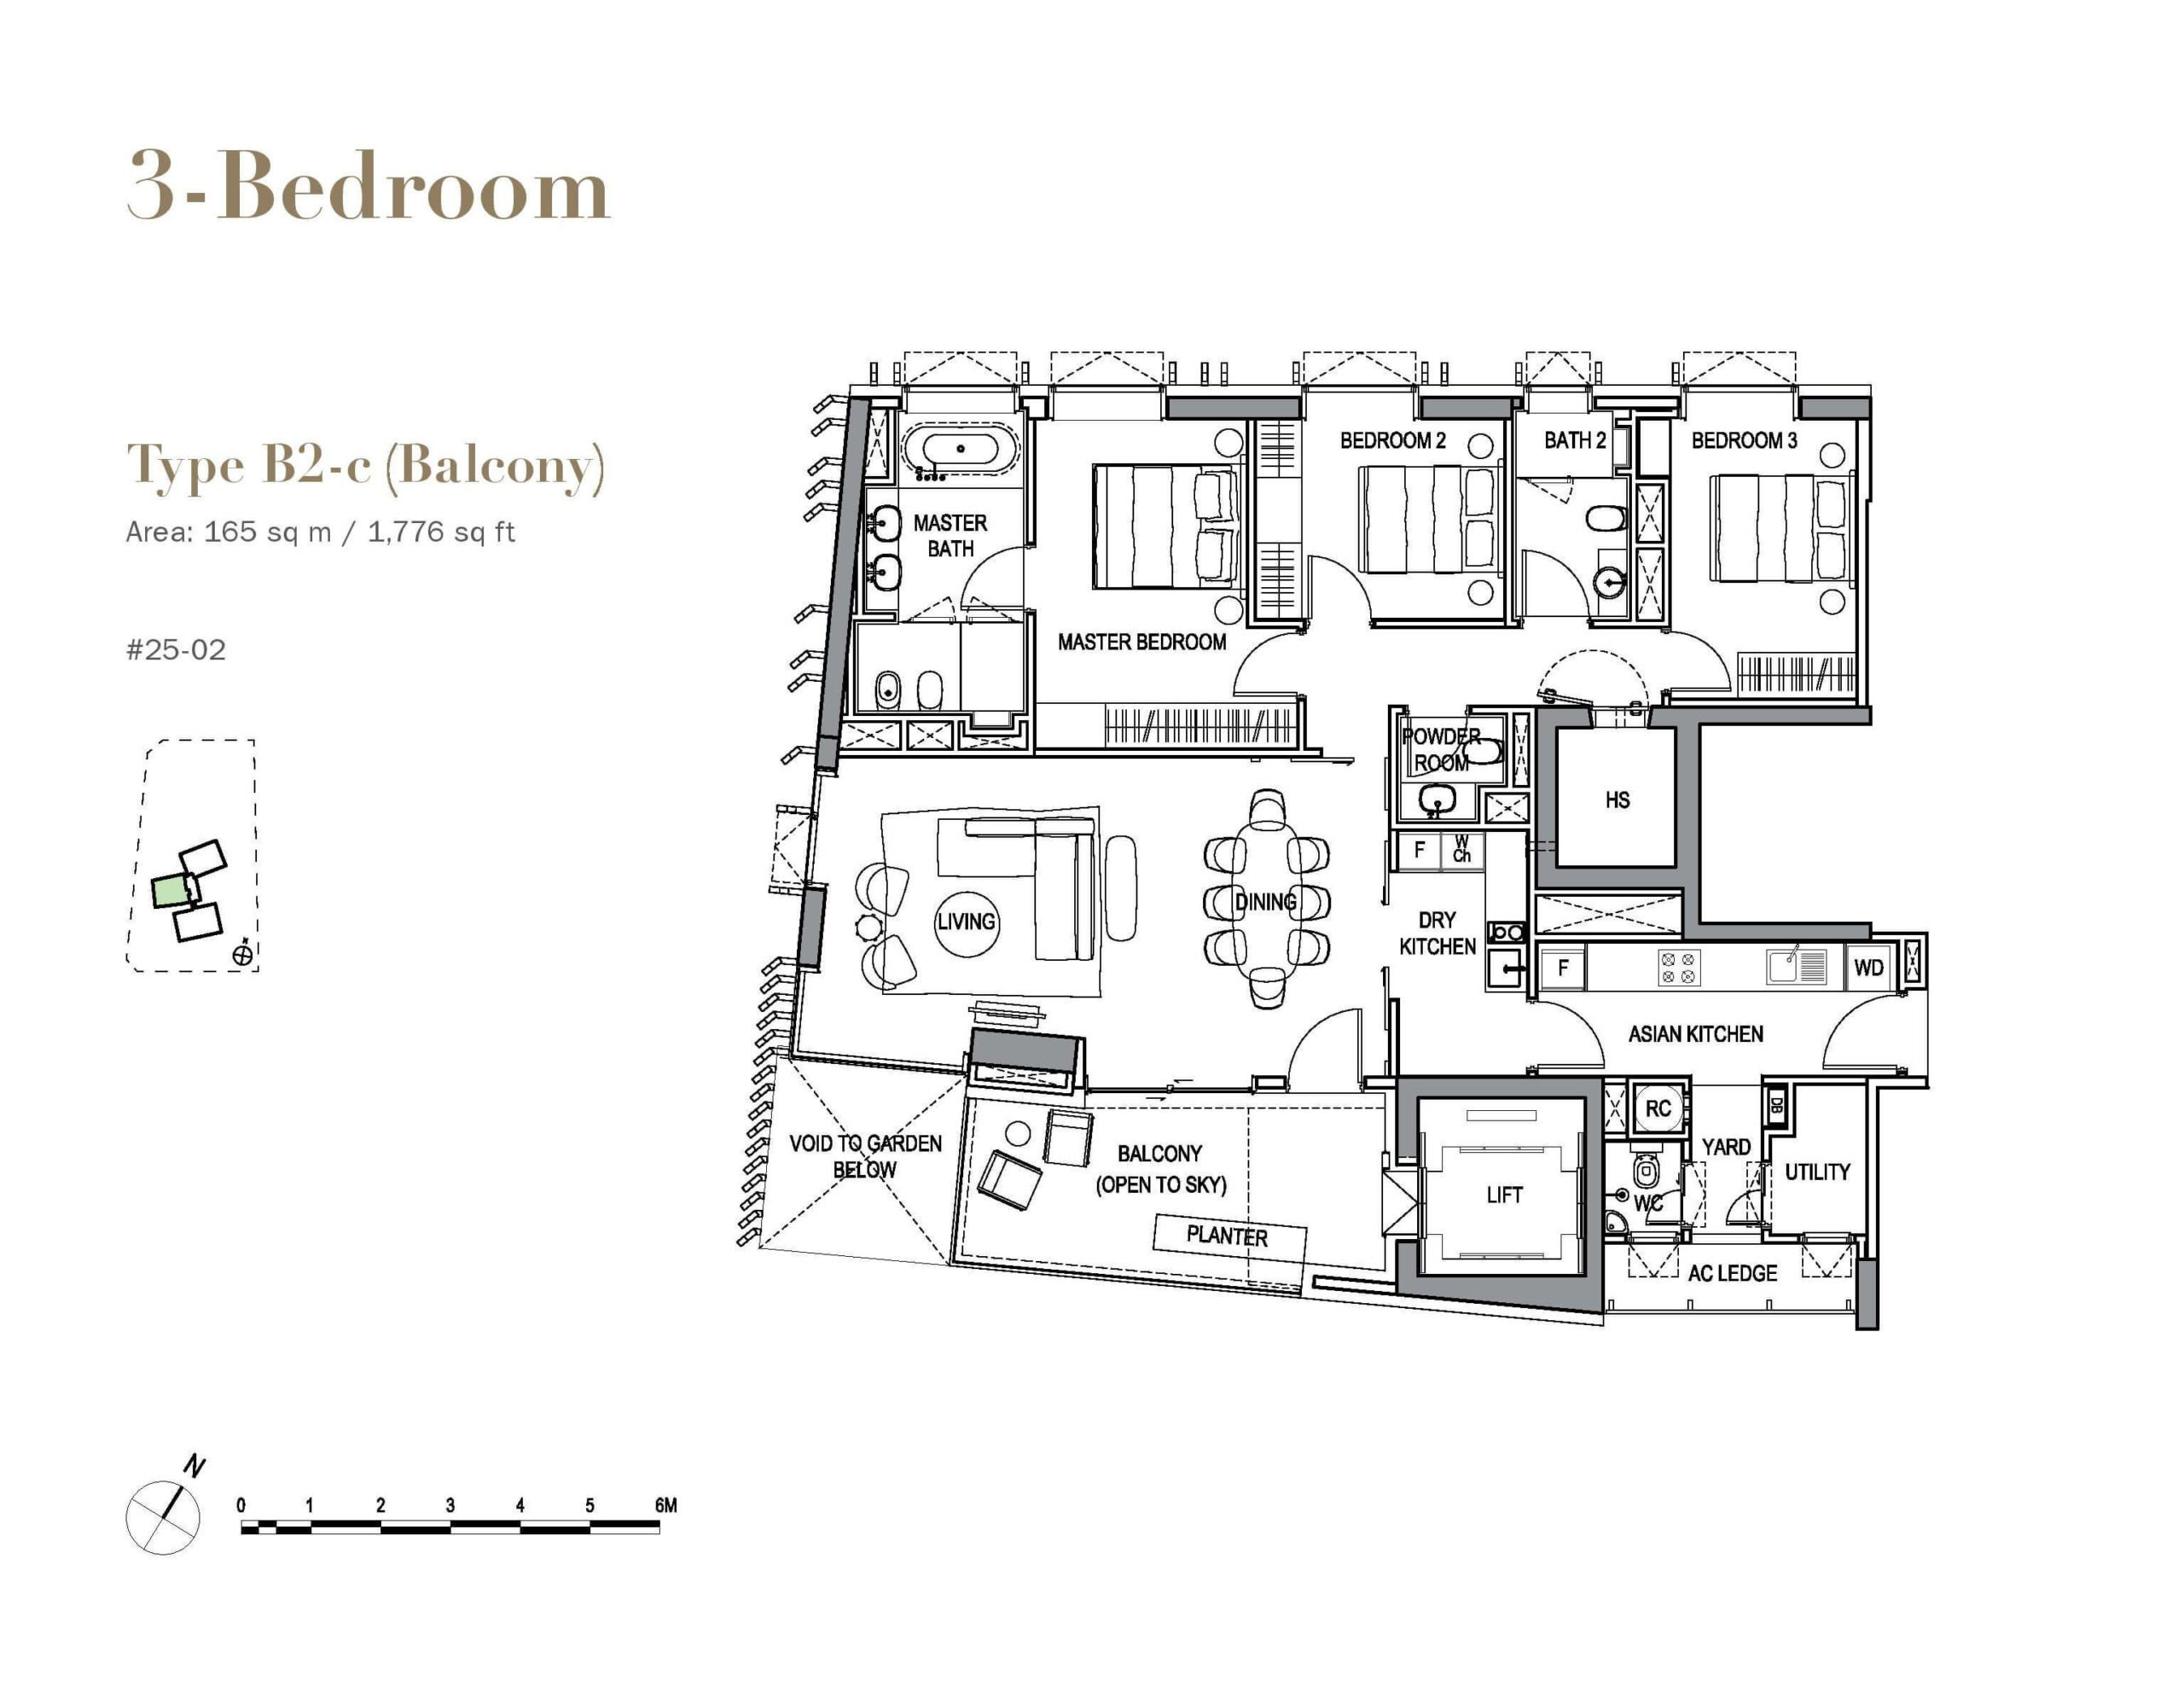 3 orchard by the park floor plan wilderness 3 Bedroom B2c scaled